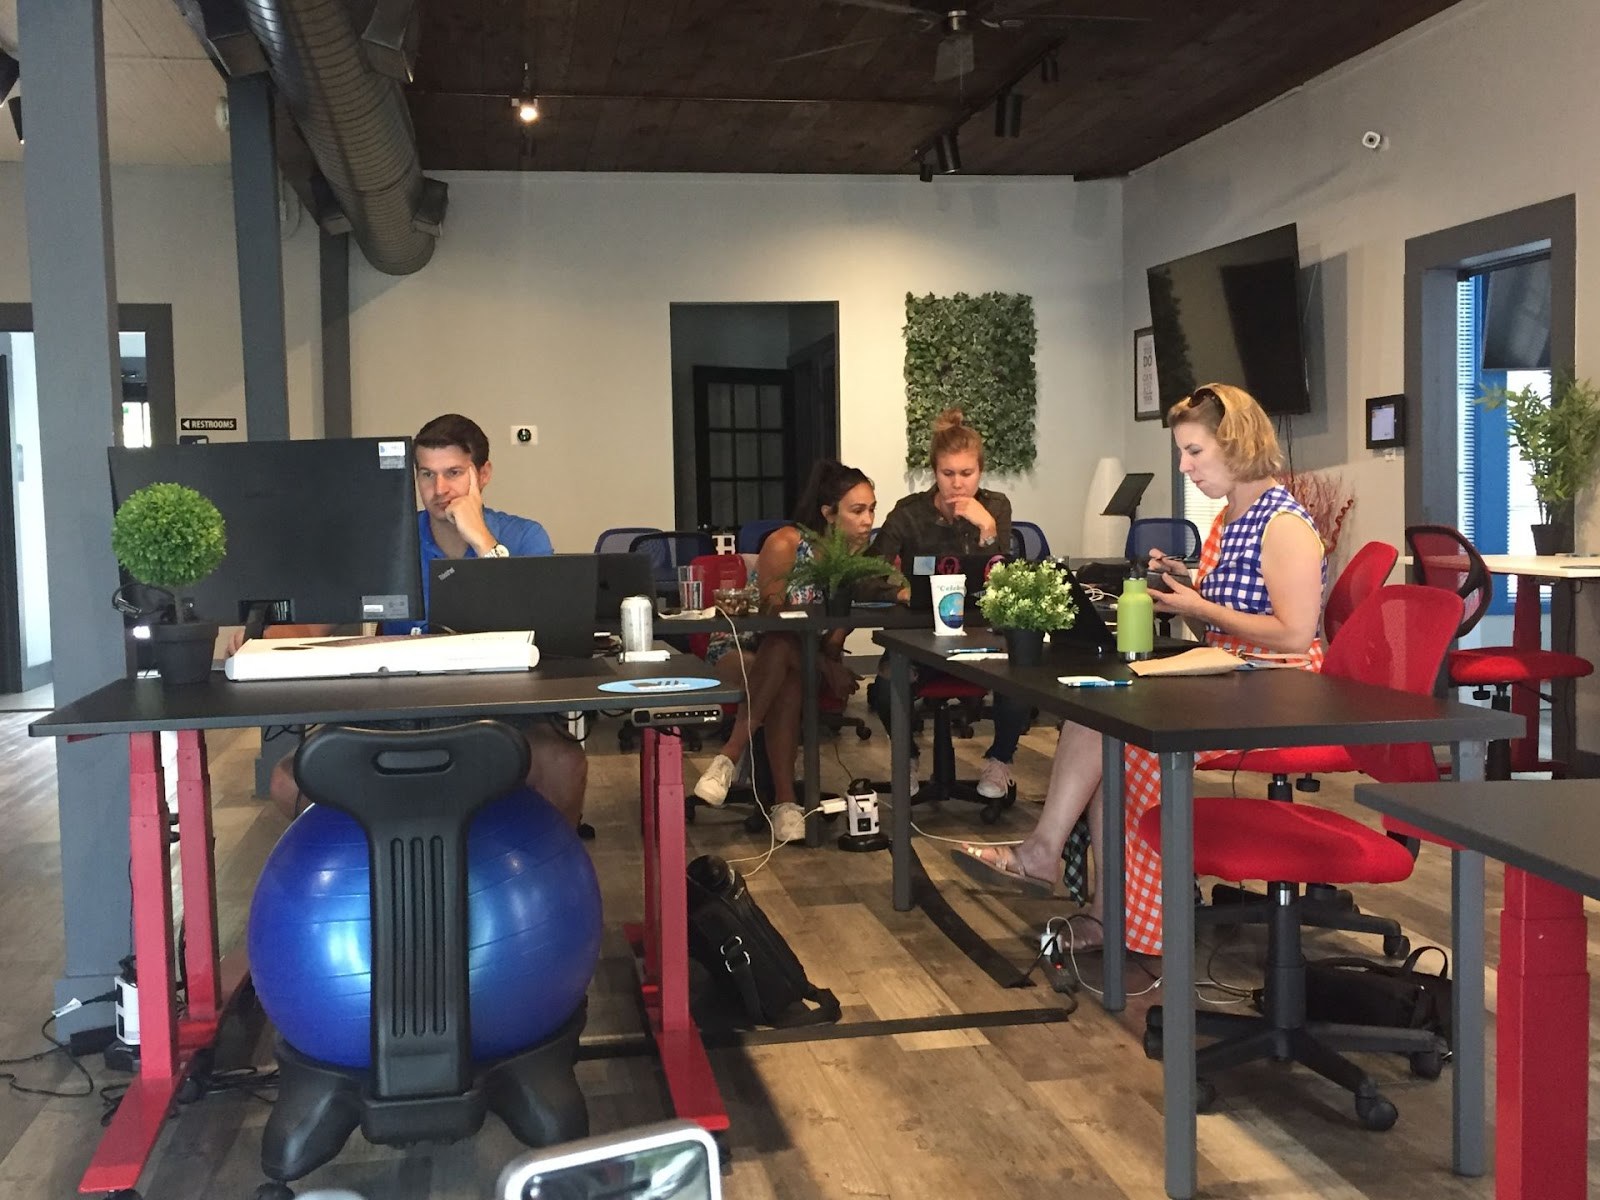 Coworking Space Austin: 15 Best Spaces with Pricing, Amenities & Location [2021] 40